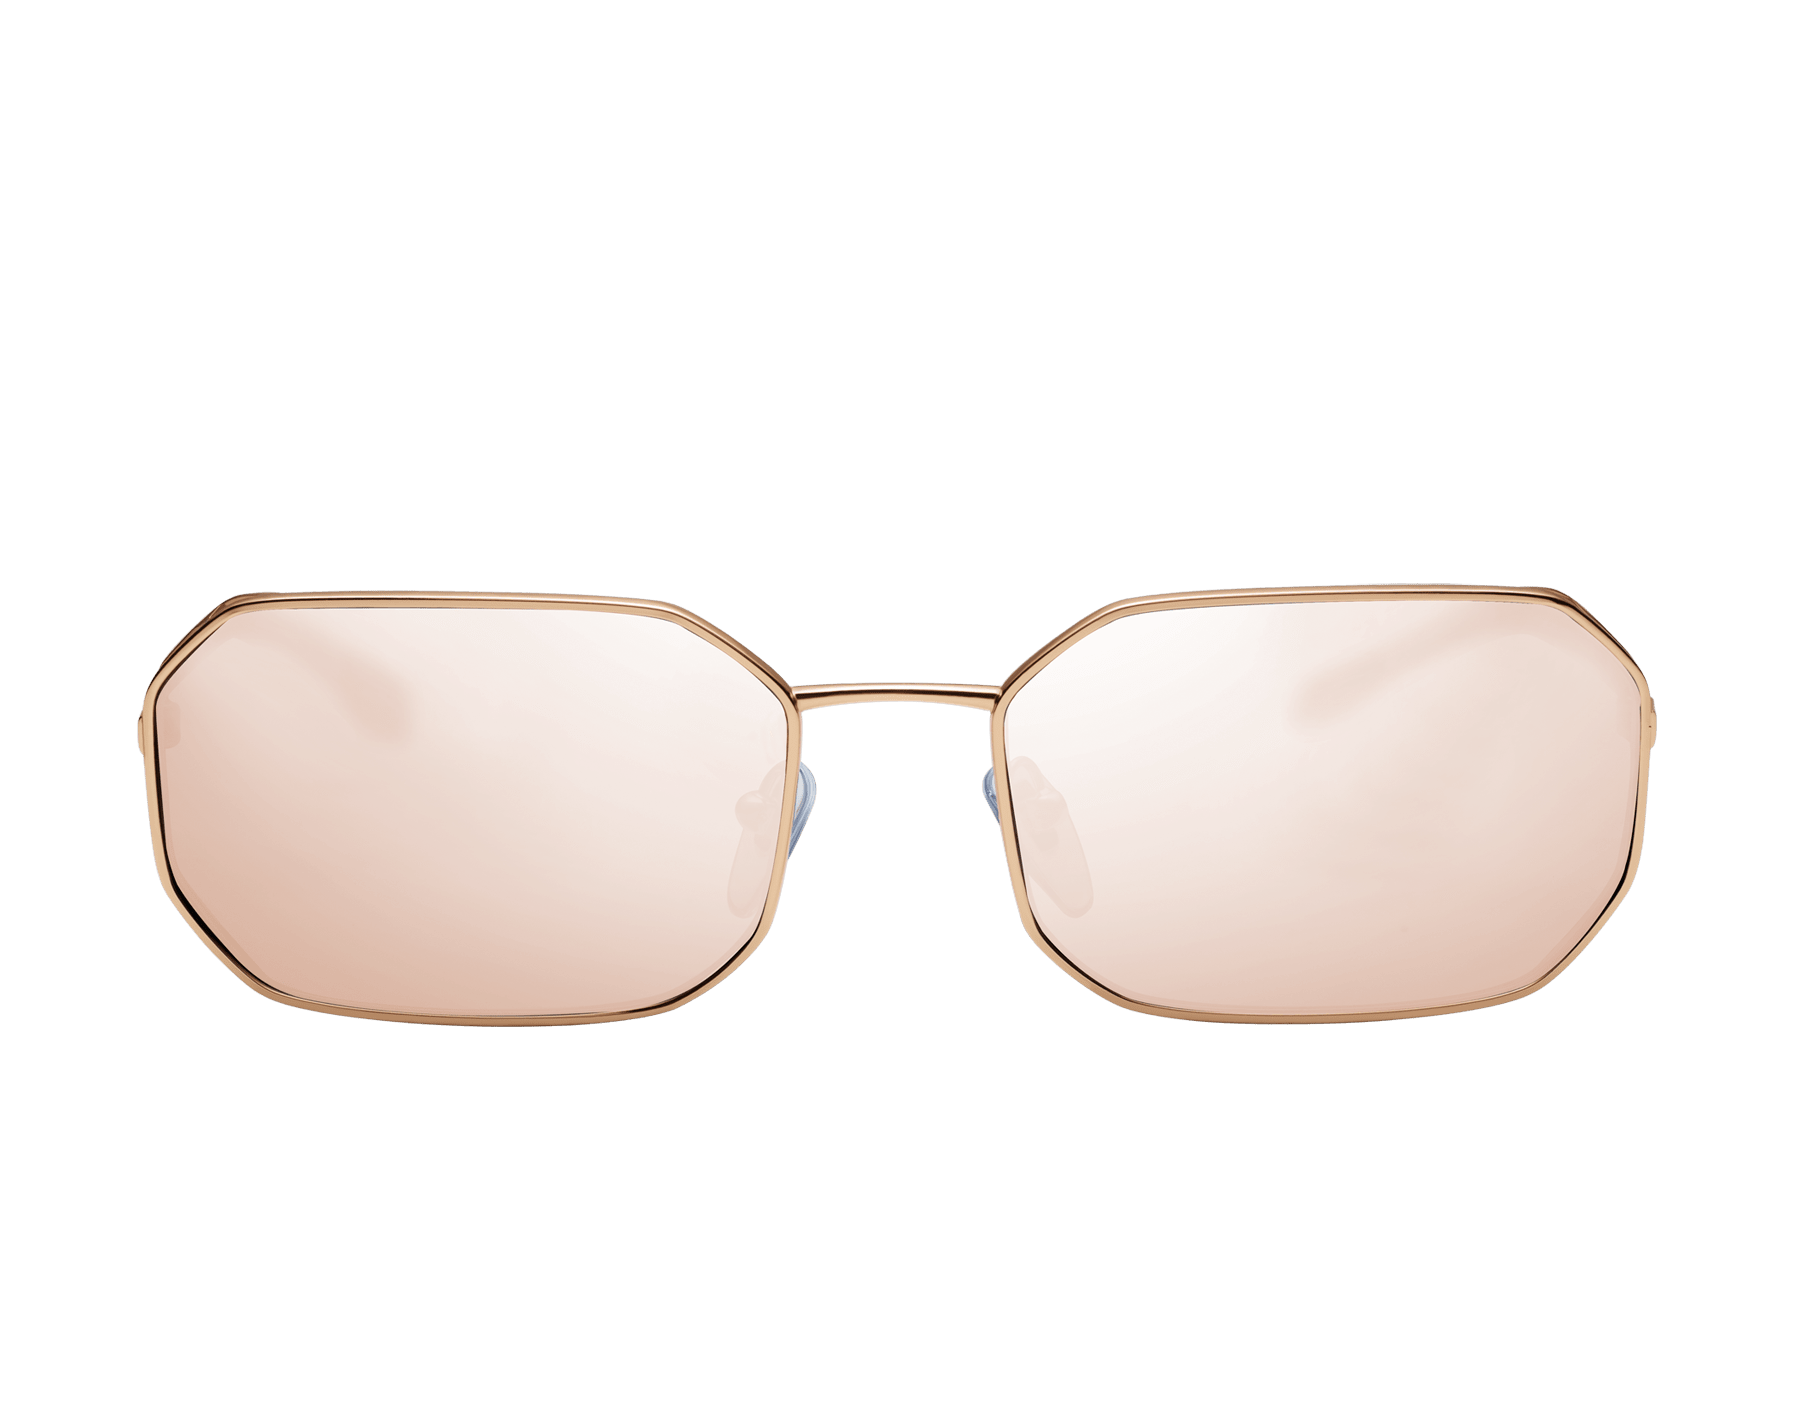 Bvlgari Serpenti Narrowmation rectangular aviator metal sunglasses. 903861 image 2